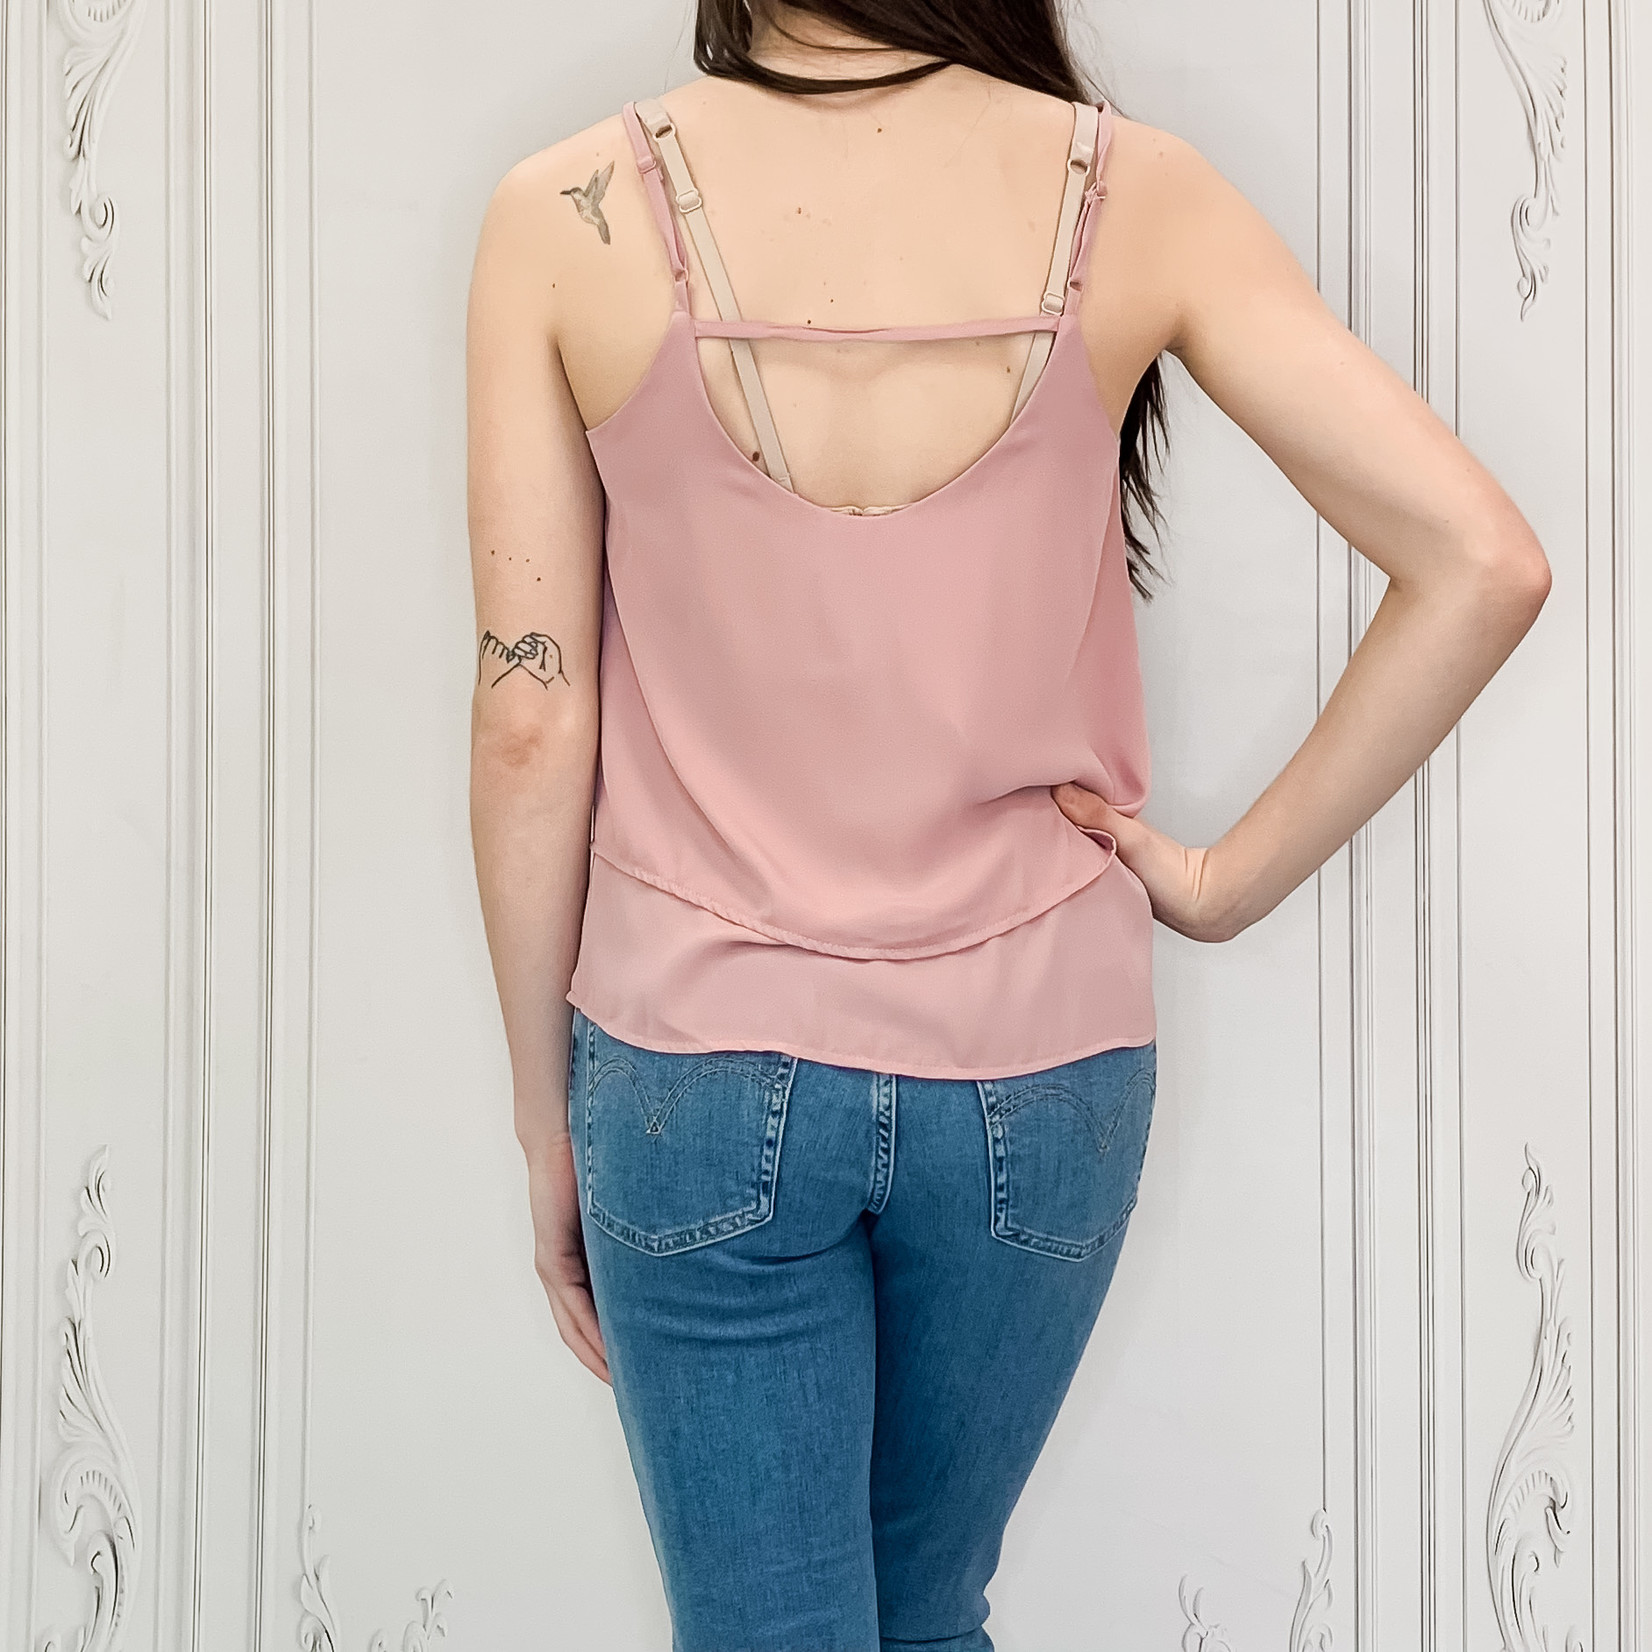 double tiered cami top